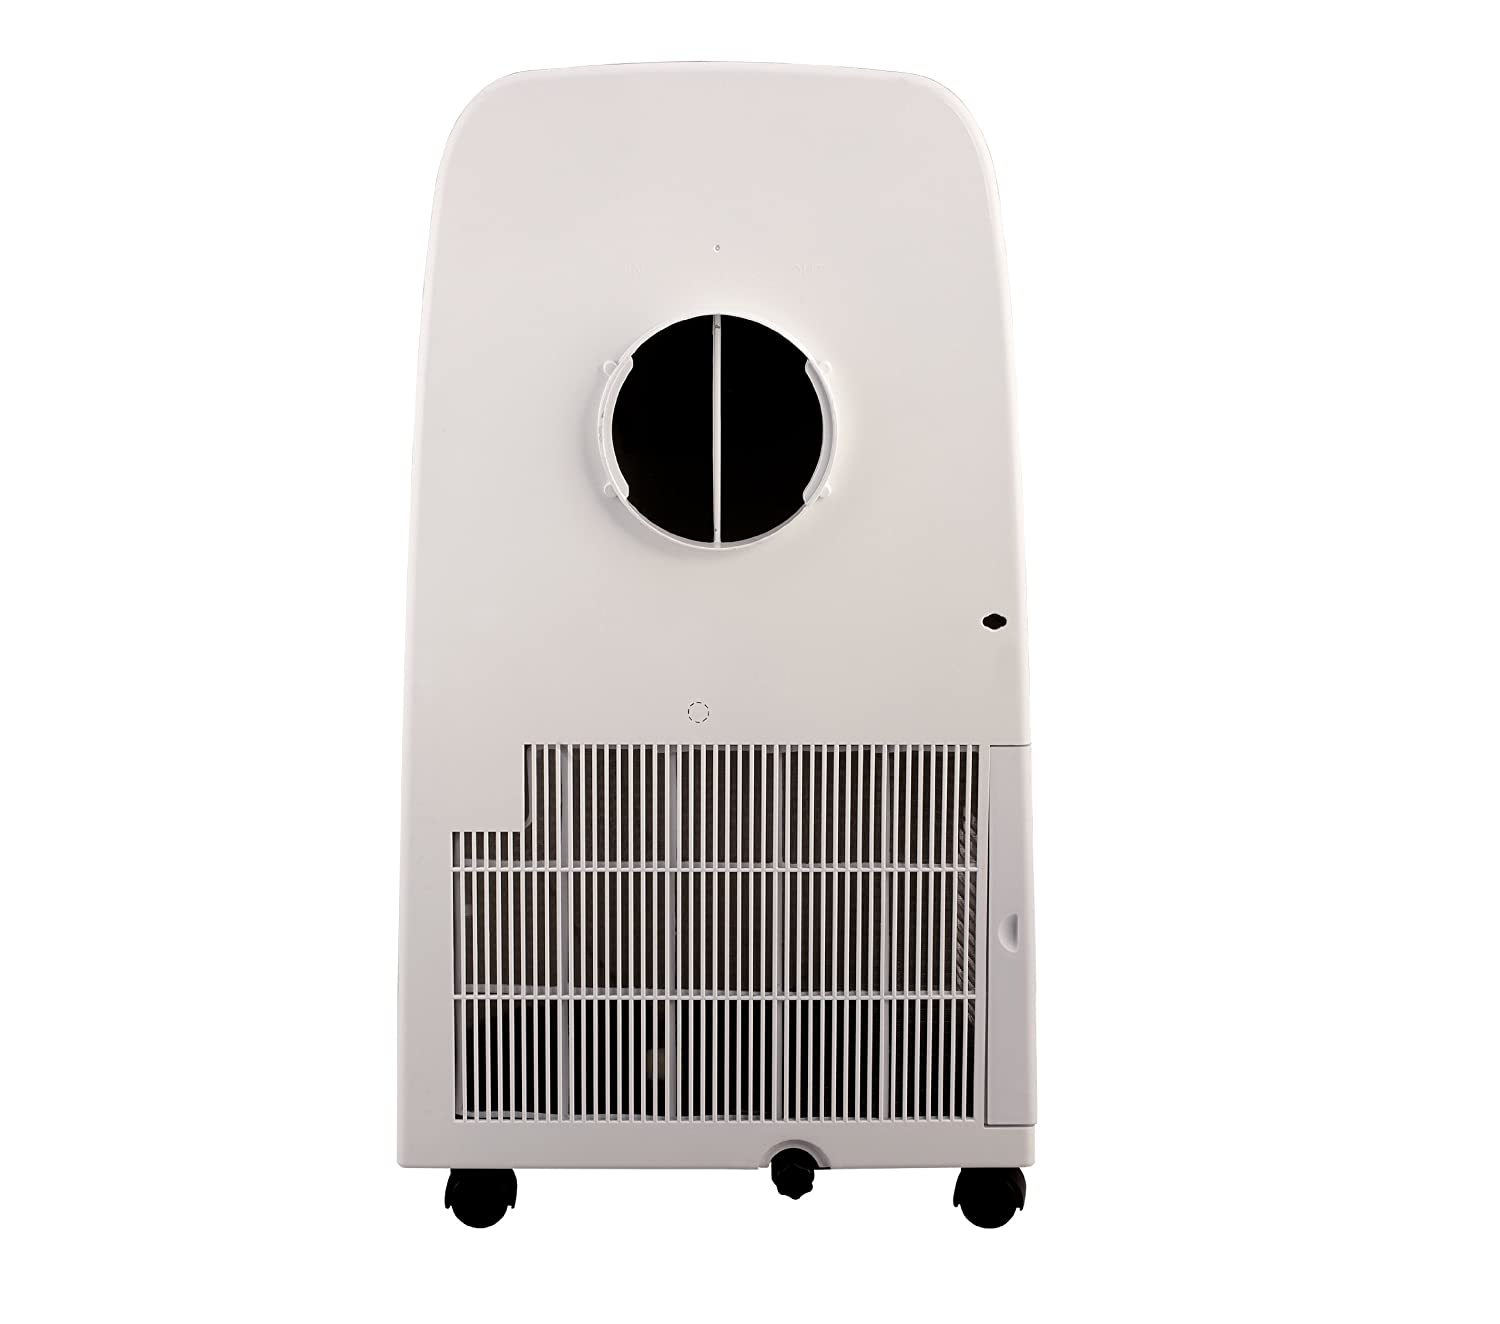 CCH YPL3-10C-CCH 10000 Btu Portable Air Conditioner with remote